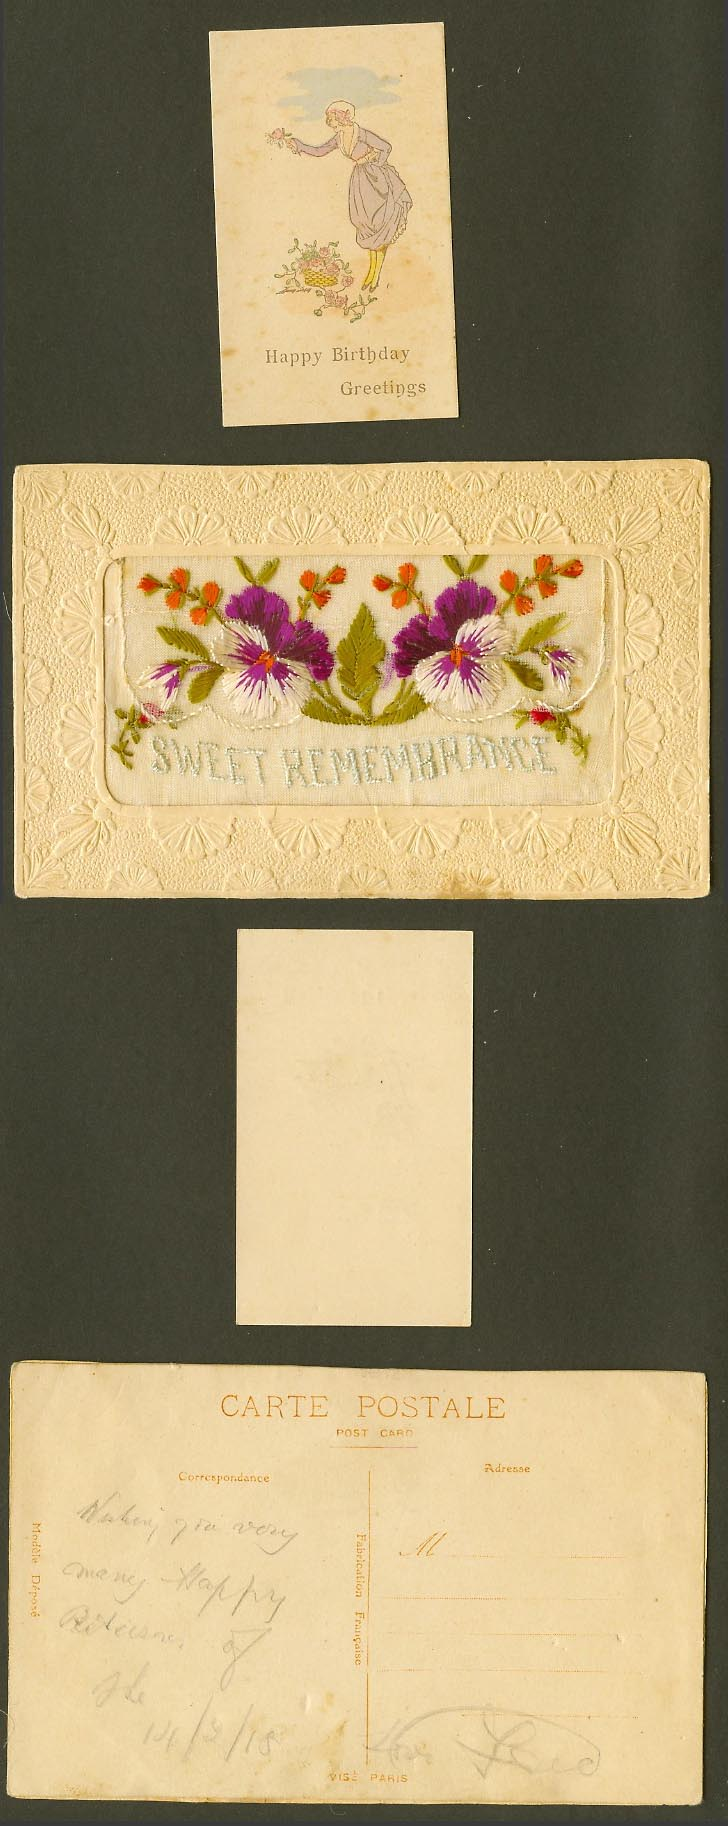 WW1 SILK Embroidered 1918 Old Postcard Sweet Remembrance Happy Birthday Greeting